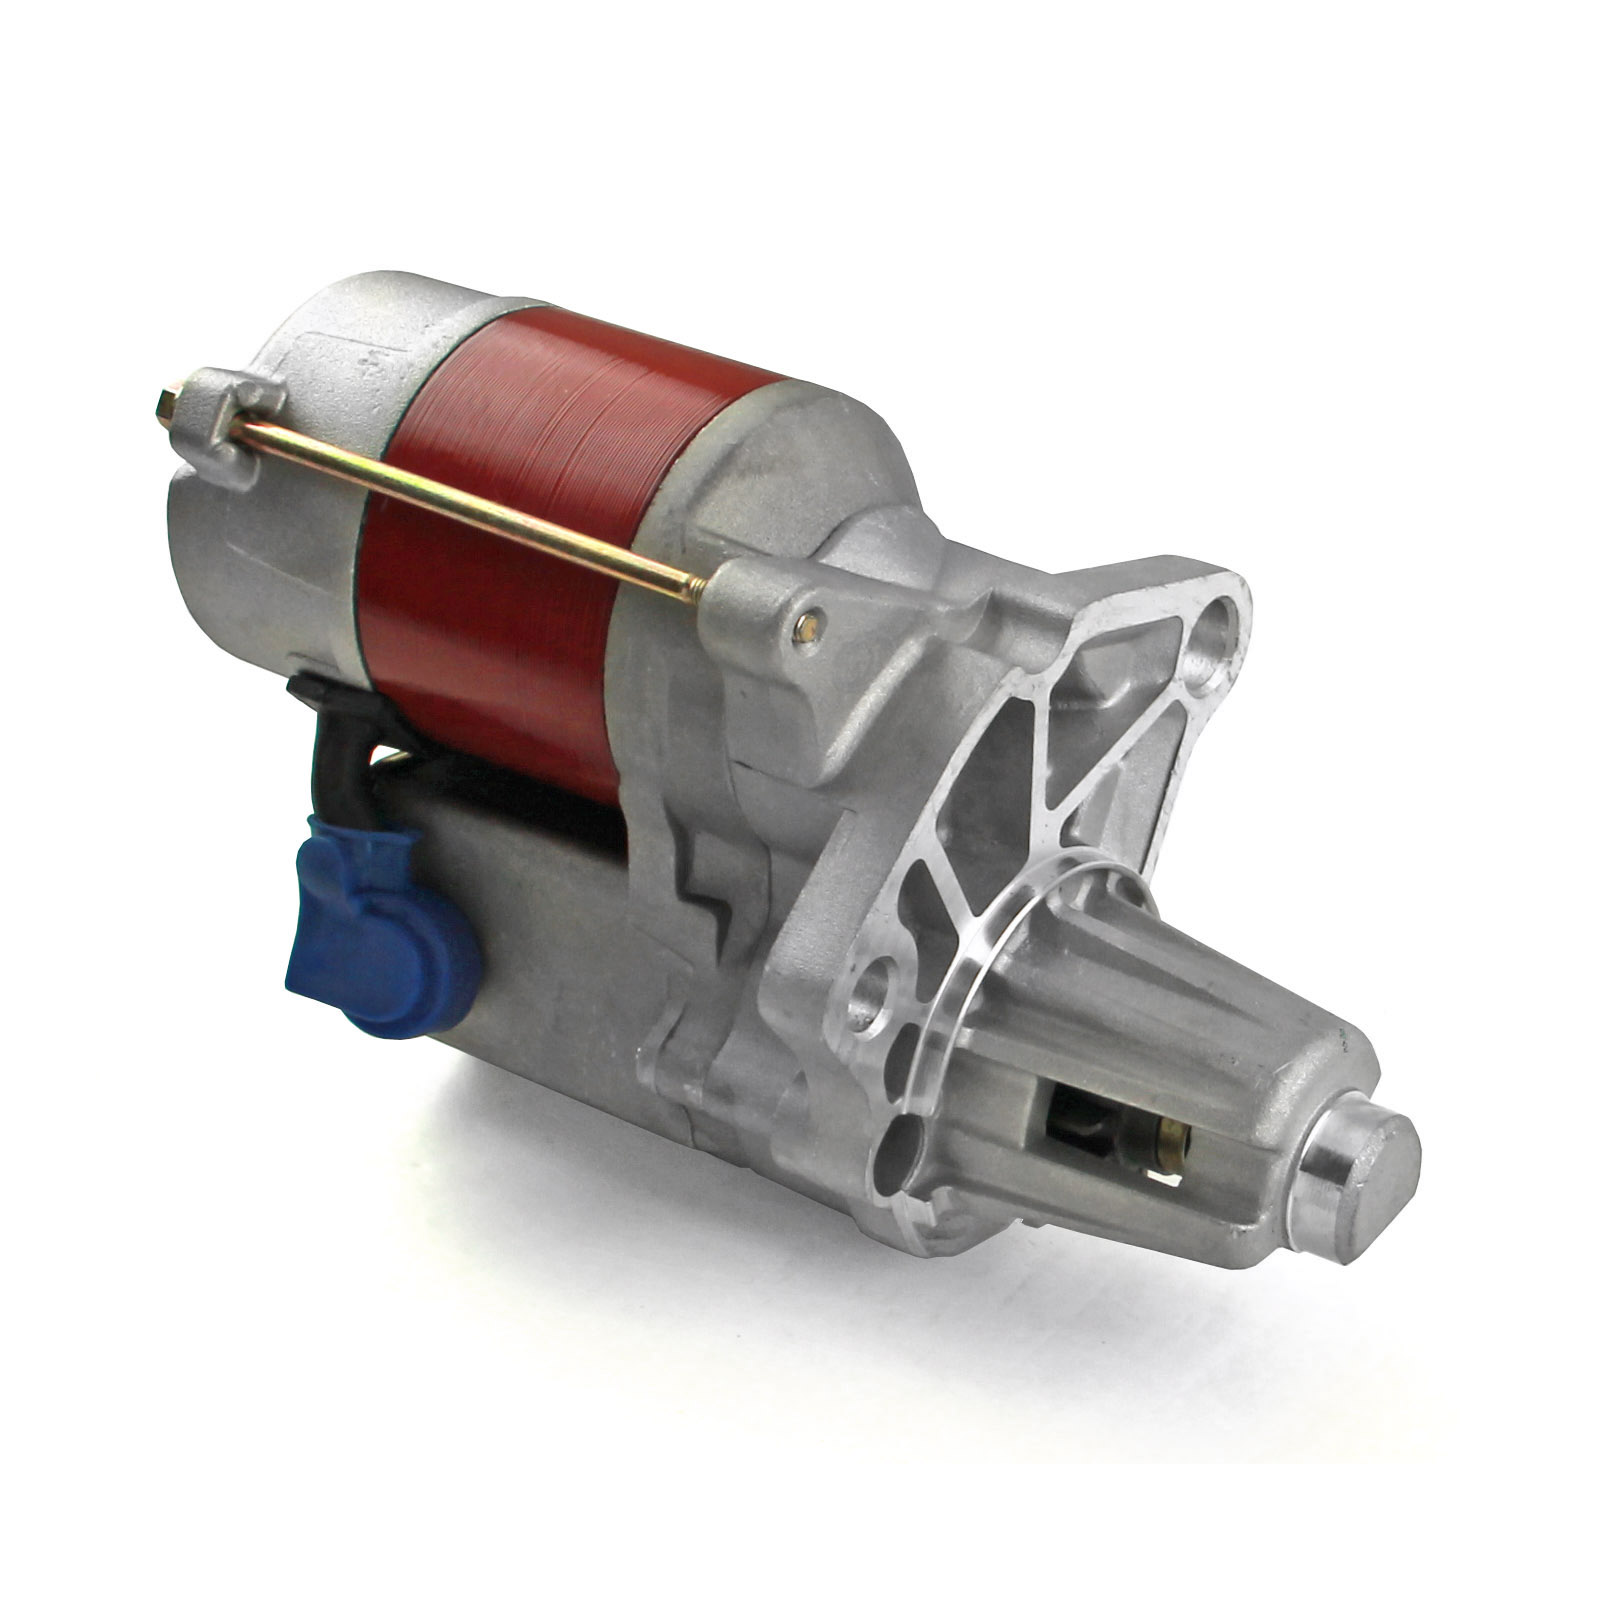 Mopar-Chrysler-SB-318-360-383-440-Mini-Muscle-2-5HP-High-Torque-Starter-Motor